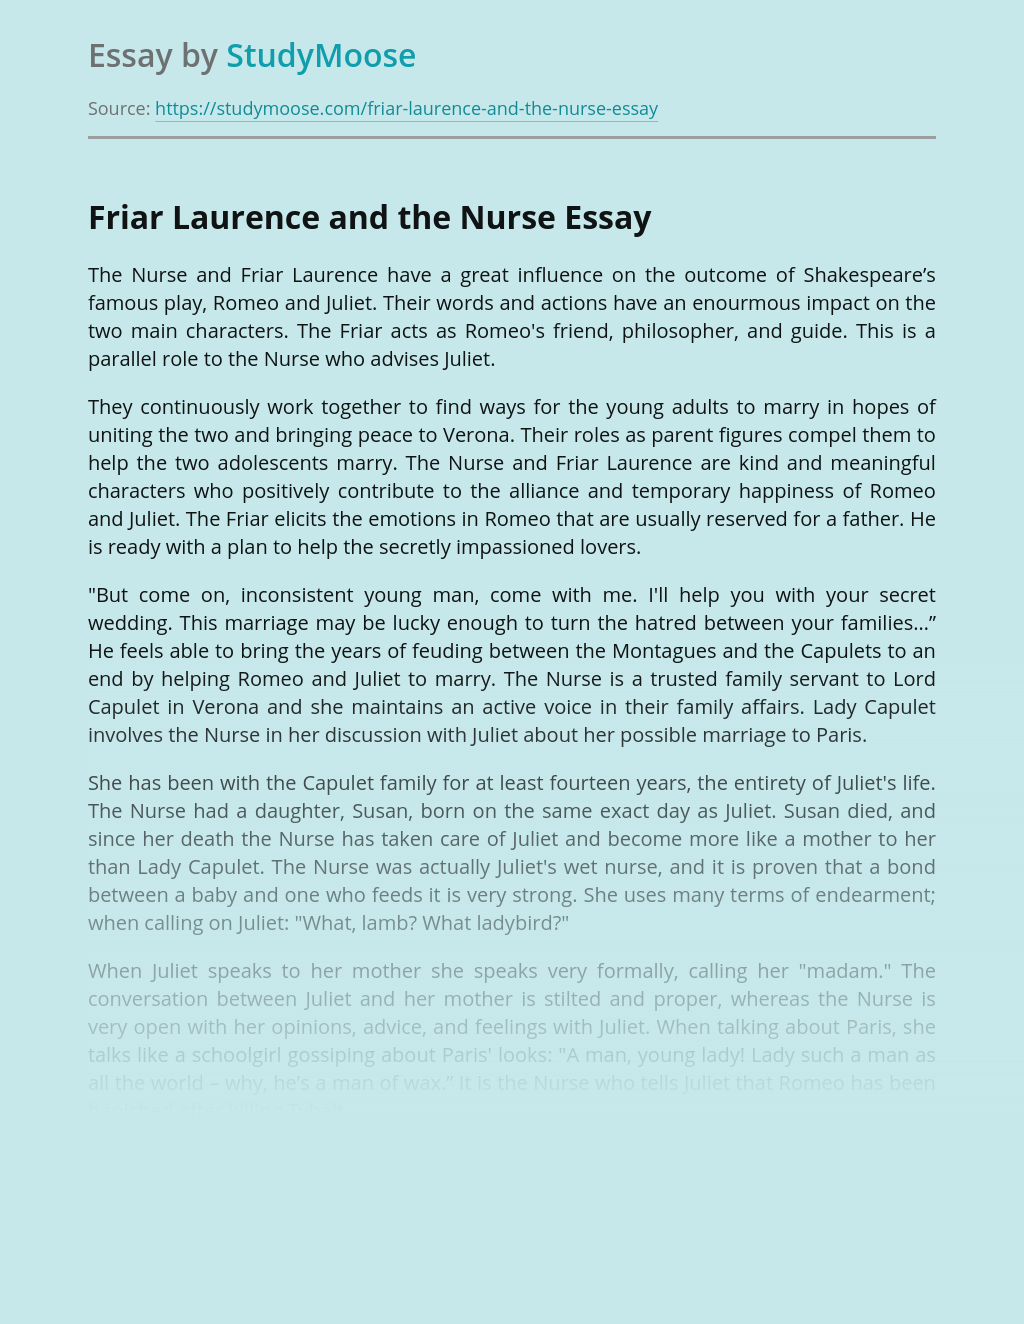 Friar Laurence and the Nurse